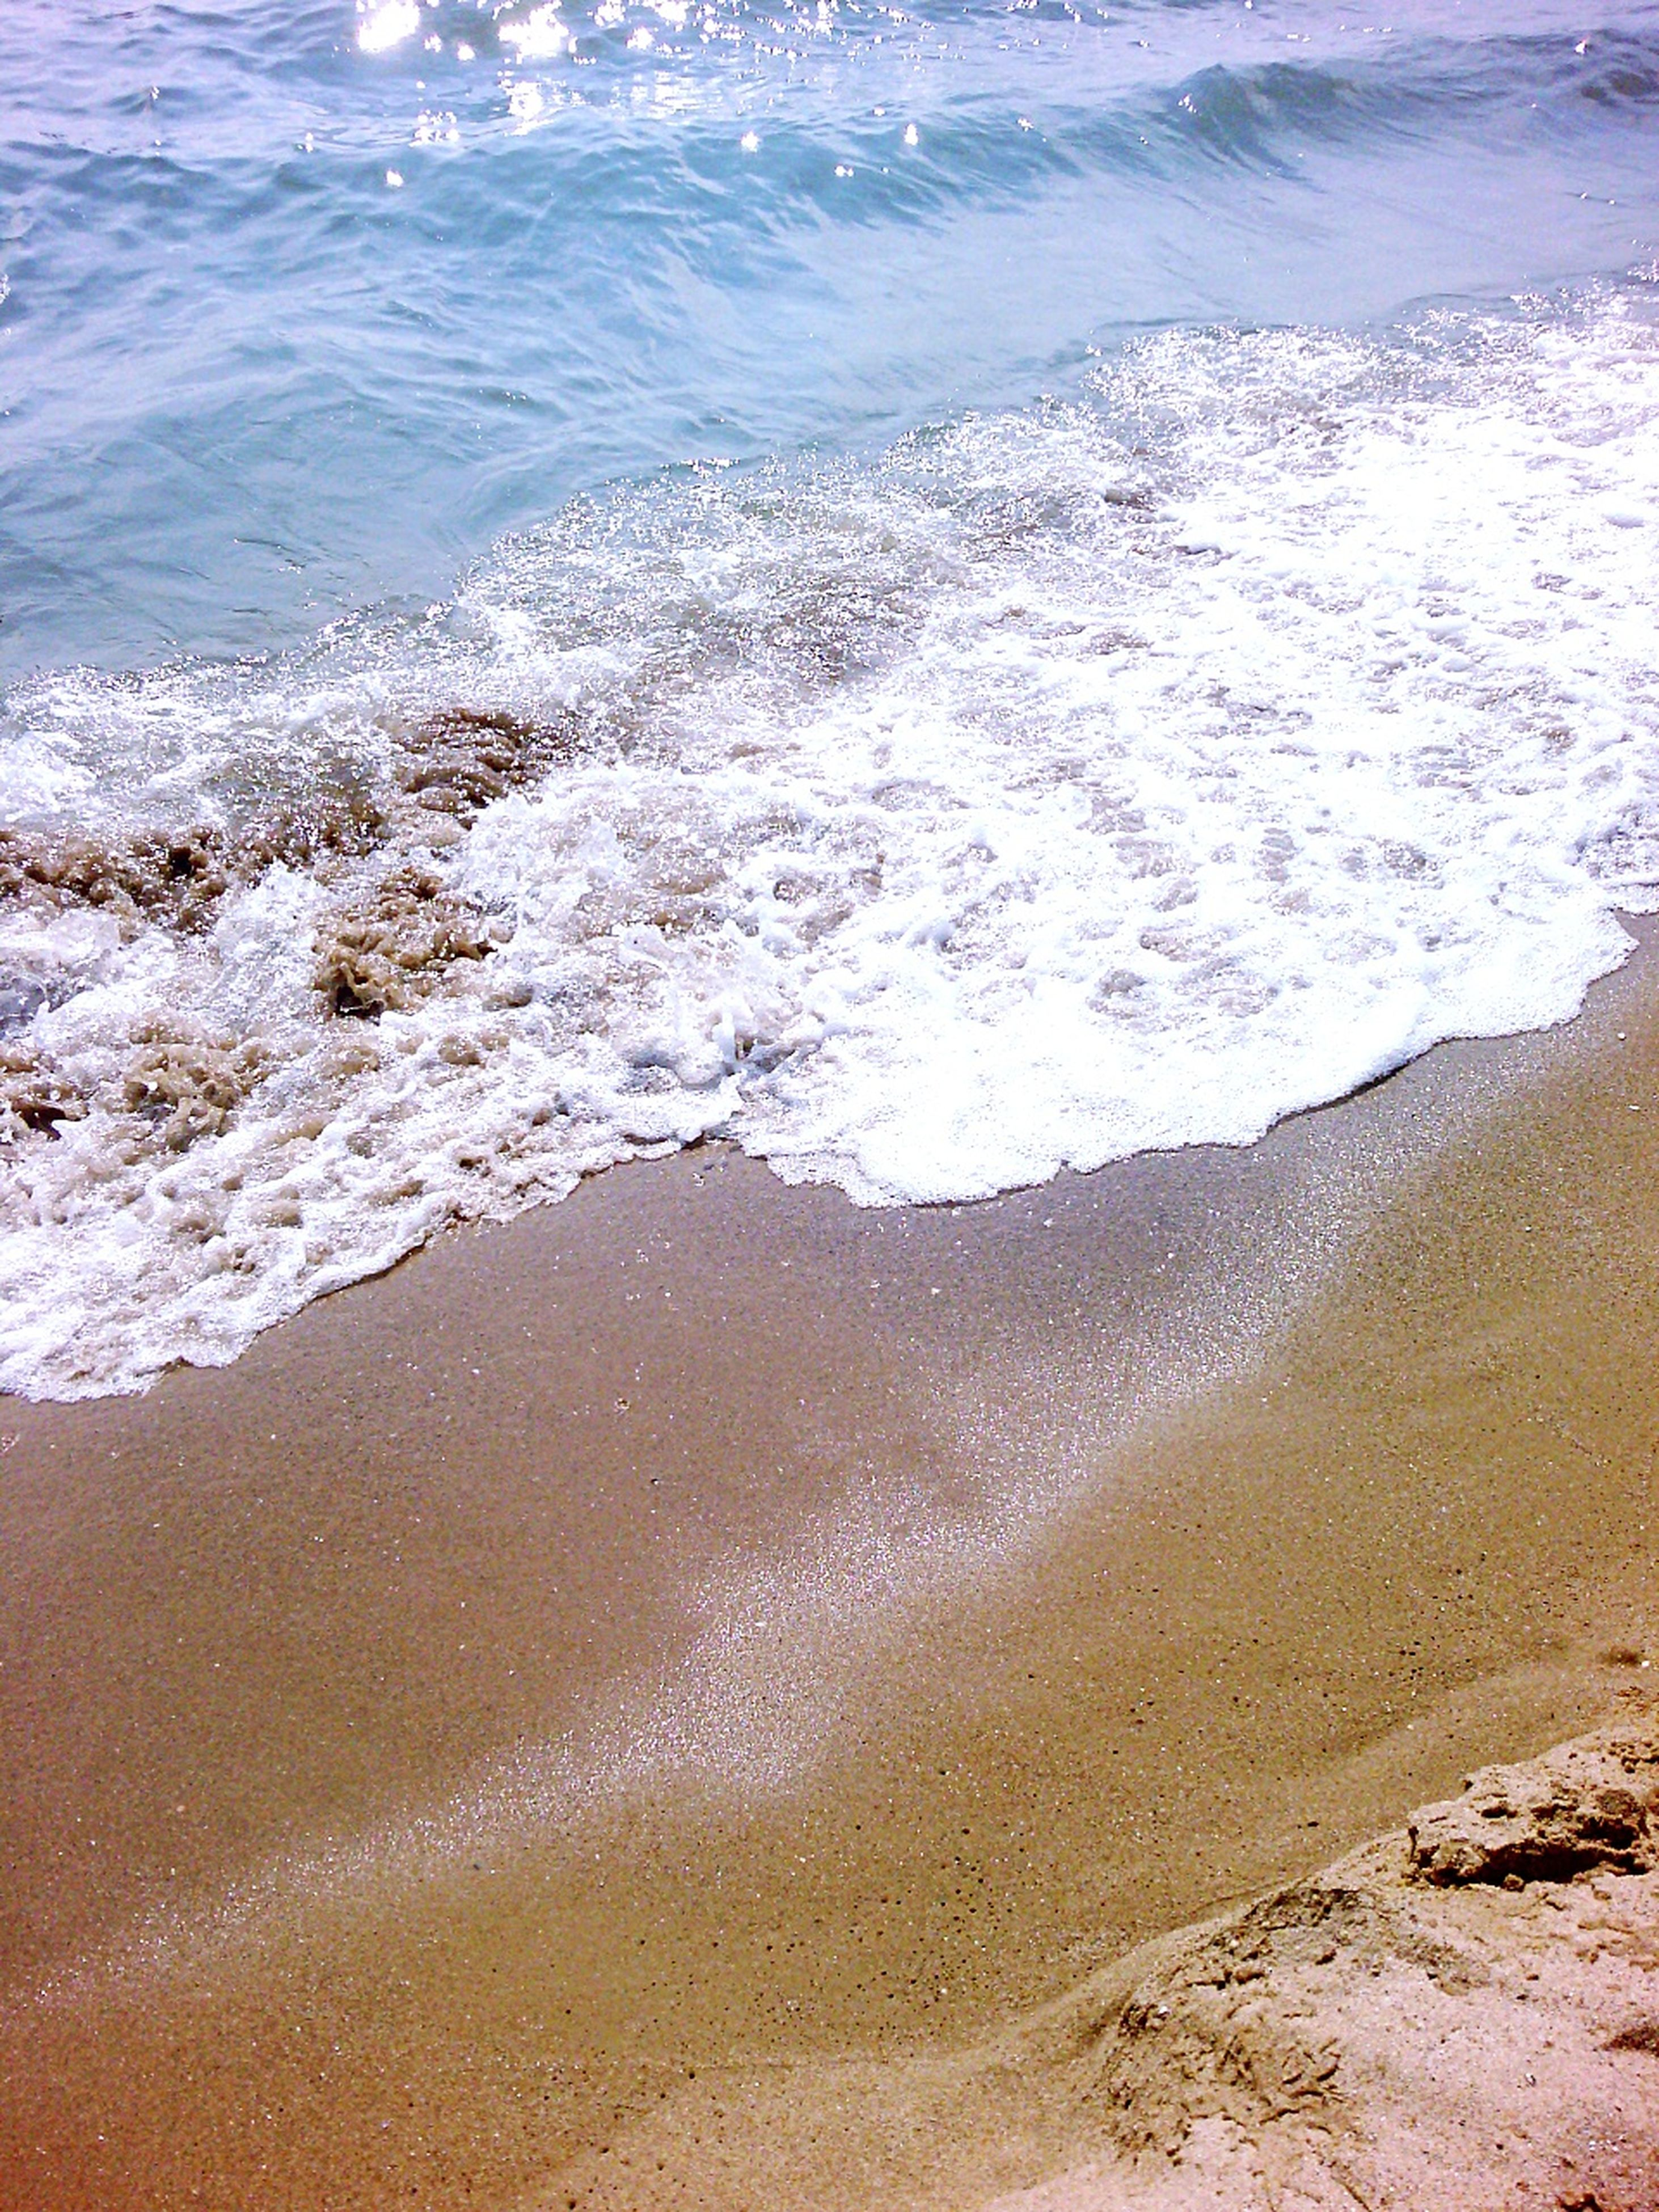 water, beach, sea, sand, shore, tranquility, wave, tranquil scene, surf, beauty in nature, scenics, nature, coastline, high angle view, idyllic, outdoors, day, horizon over water, sunlight, no people